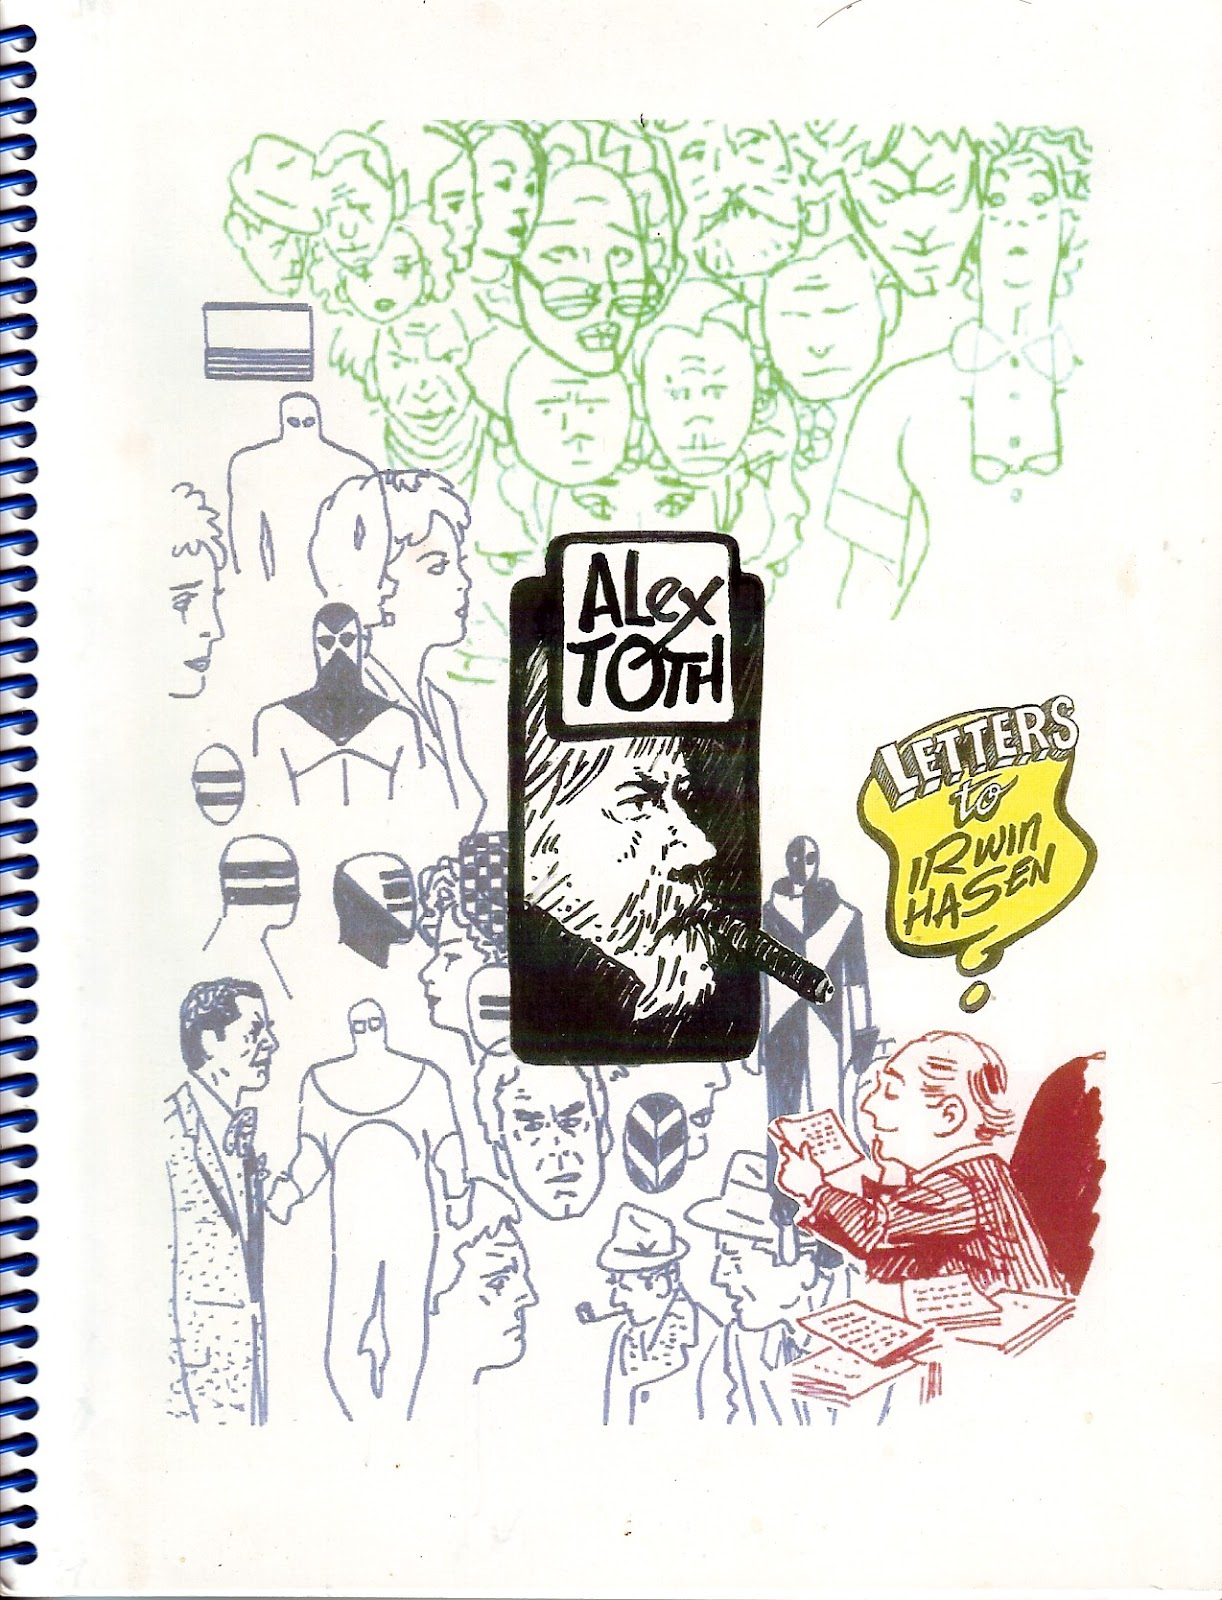 Mike Lynch Cartoons  Alex Toth  Letters to Irwin Hasen e6efacf12a